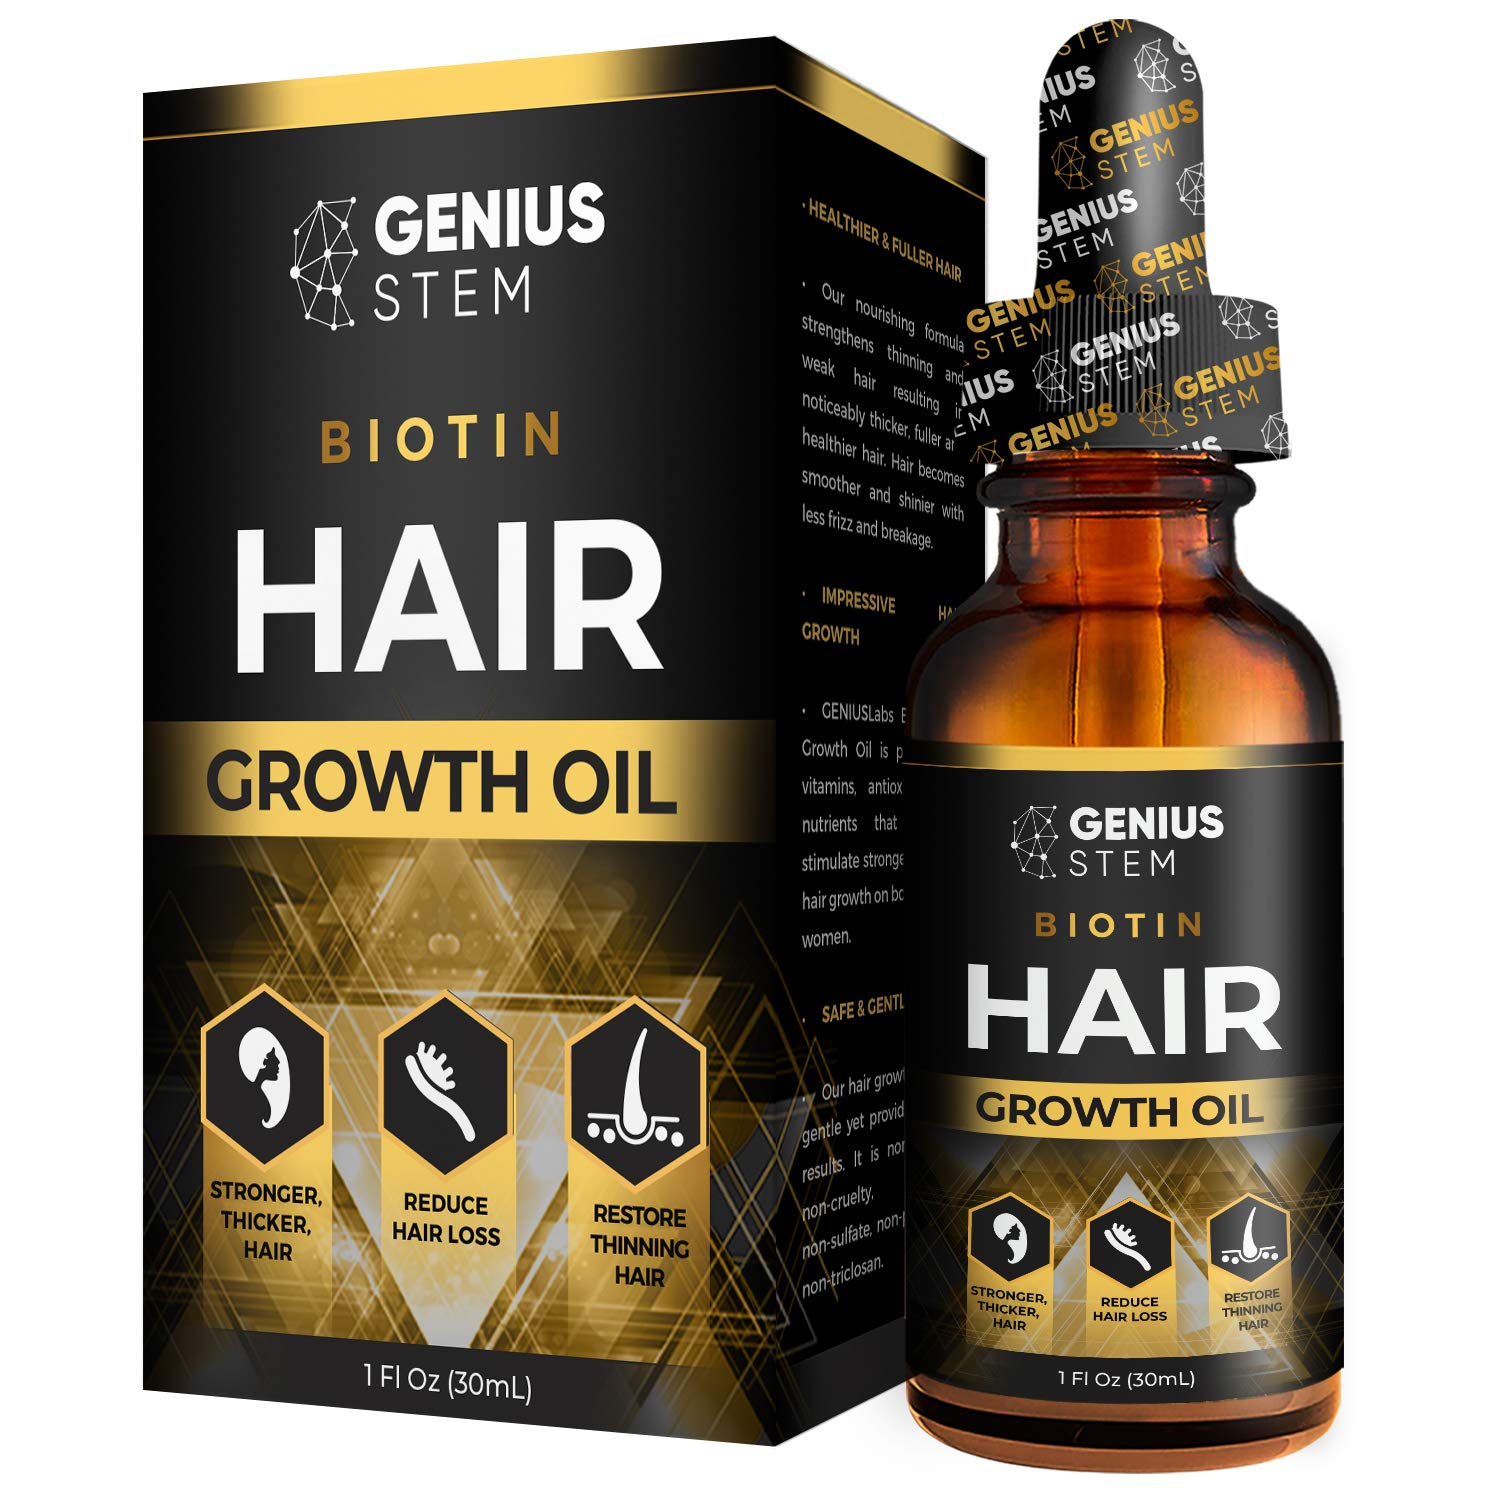 GENIUS Hair Growth Oil, PREMIUM Hair Growth Serum, for Stronger, Thicker, Longer Hair, Hair Growth Treatment for Women Men With Thinning Hair Loss Serum 1fl oz